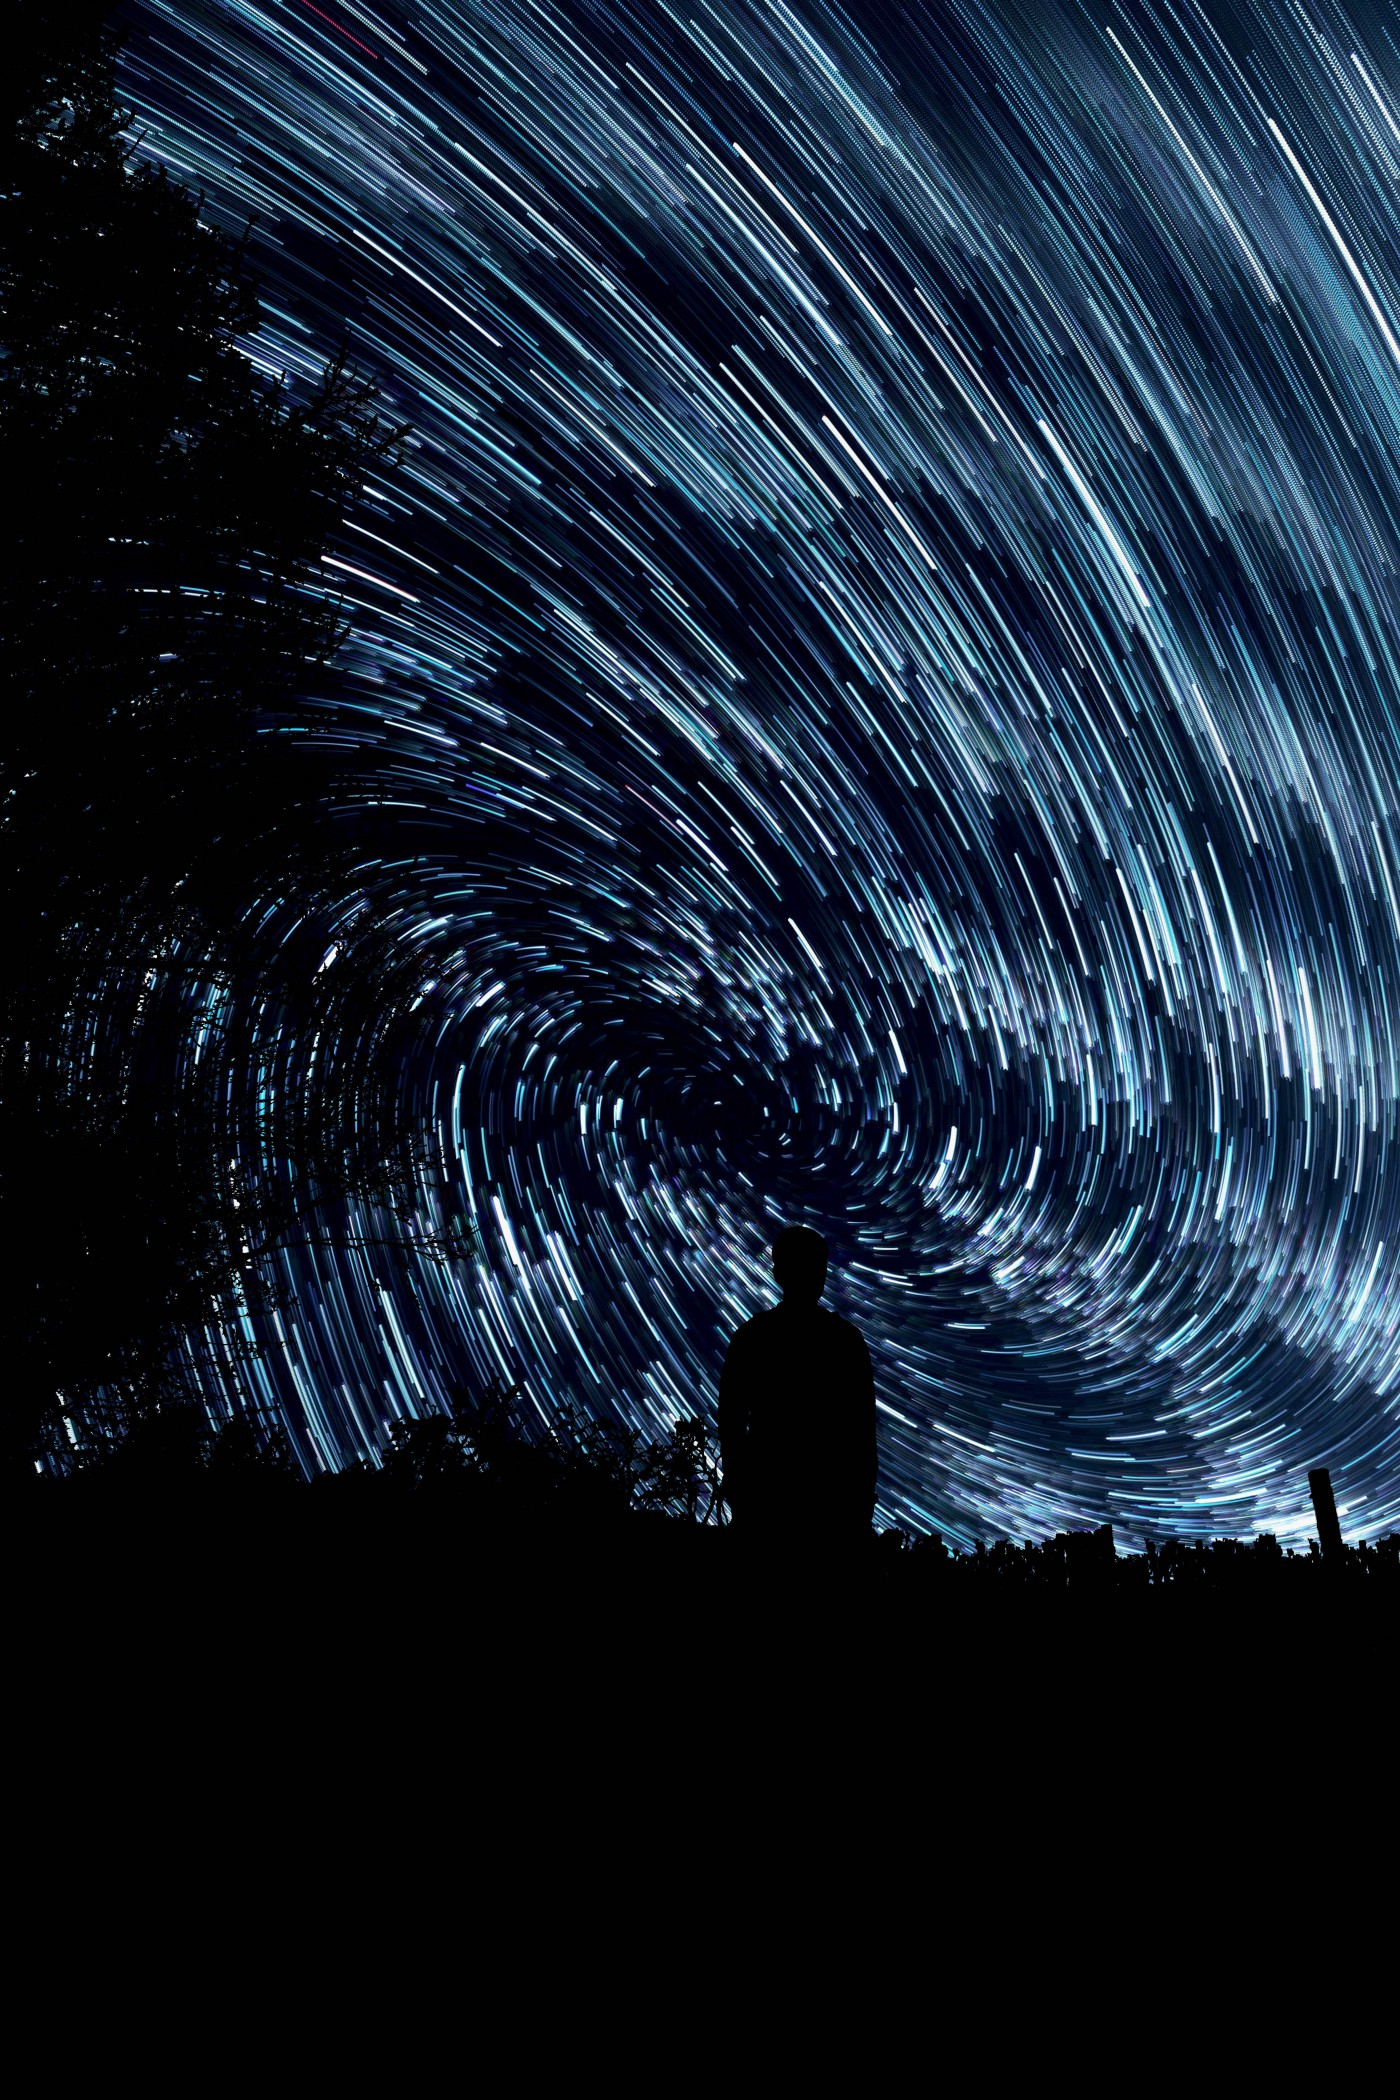 Night sky with star trails and silhouetted figure.